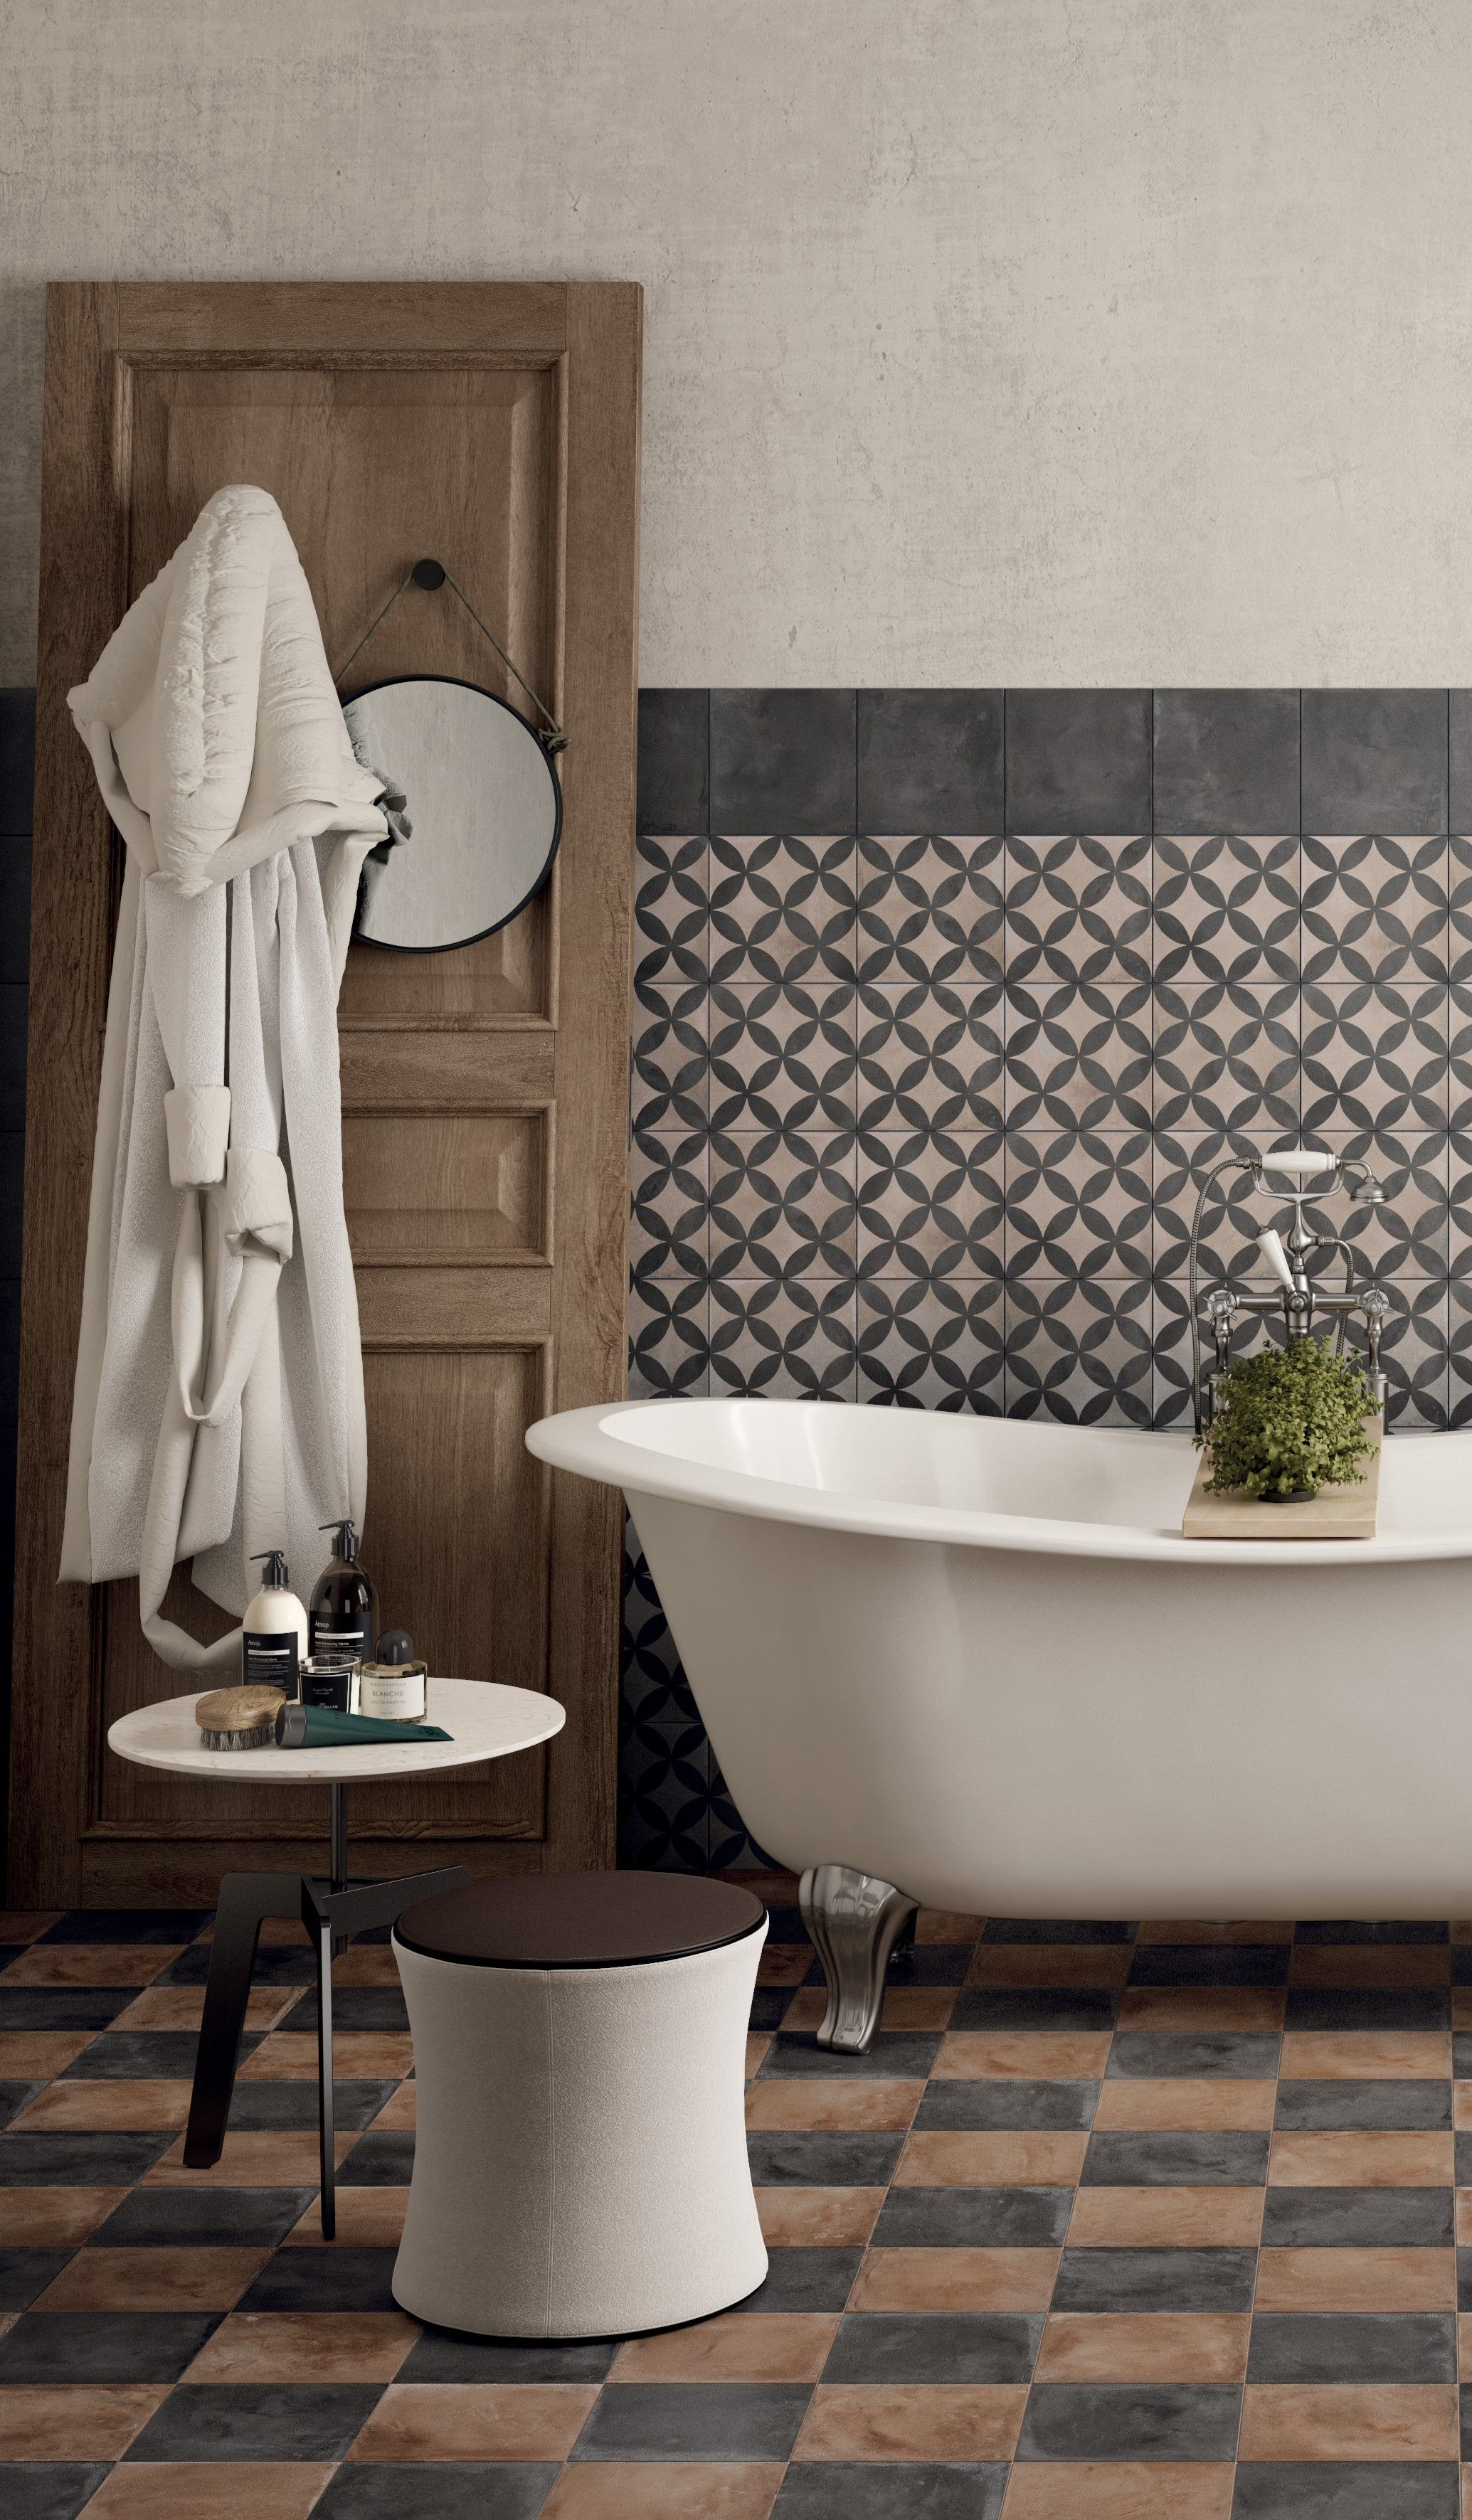 Embrace pattern in your country bathroom  #bathroom #country #ideas #tiles #pattern